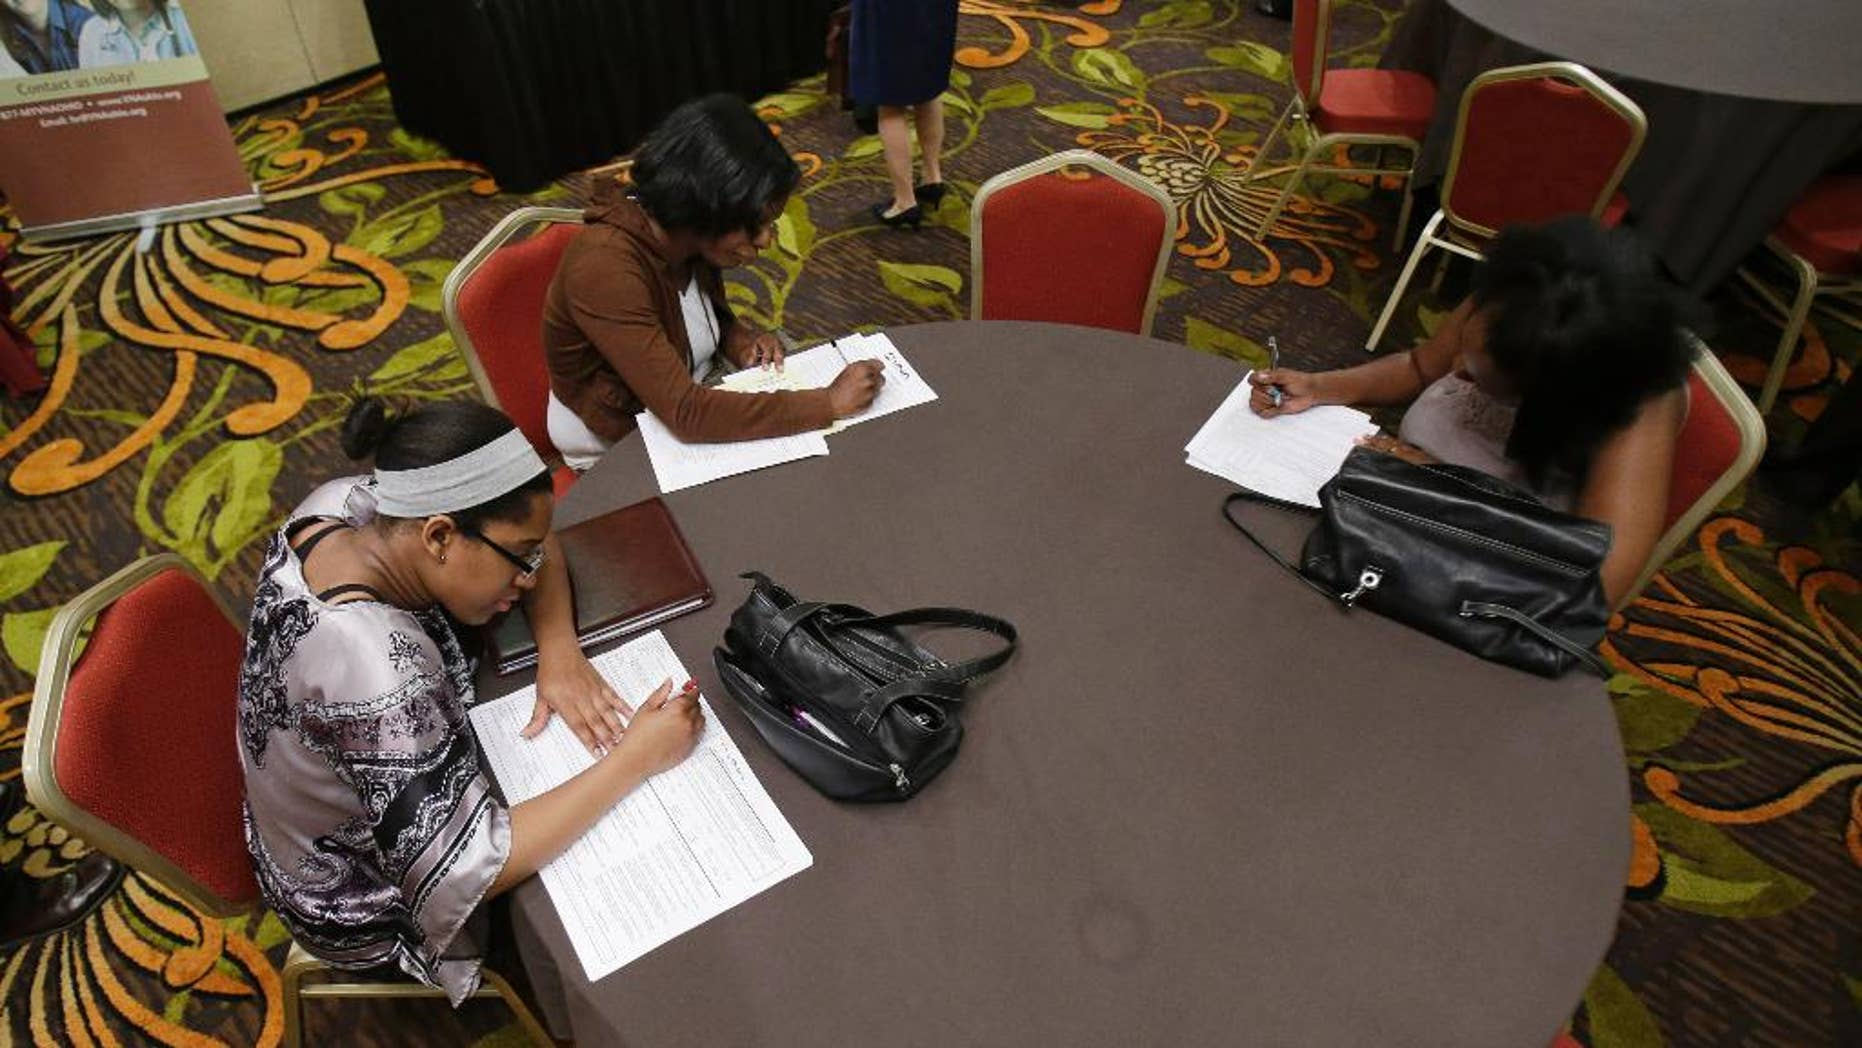 In this Thursday, June 12, 2014 photo, Desirae Gooch, left, fills out an application for a nurse's assistant job, alongside other job seekers filling out applications at the Cleveland Career Fair in Independence, Ohio. The Labor Department issues its May report on job openings and labor turnover on Tuesday, July 8, 2014. (AP Photo/Tony Dejak)